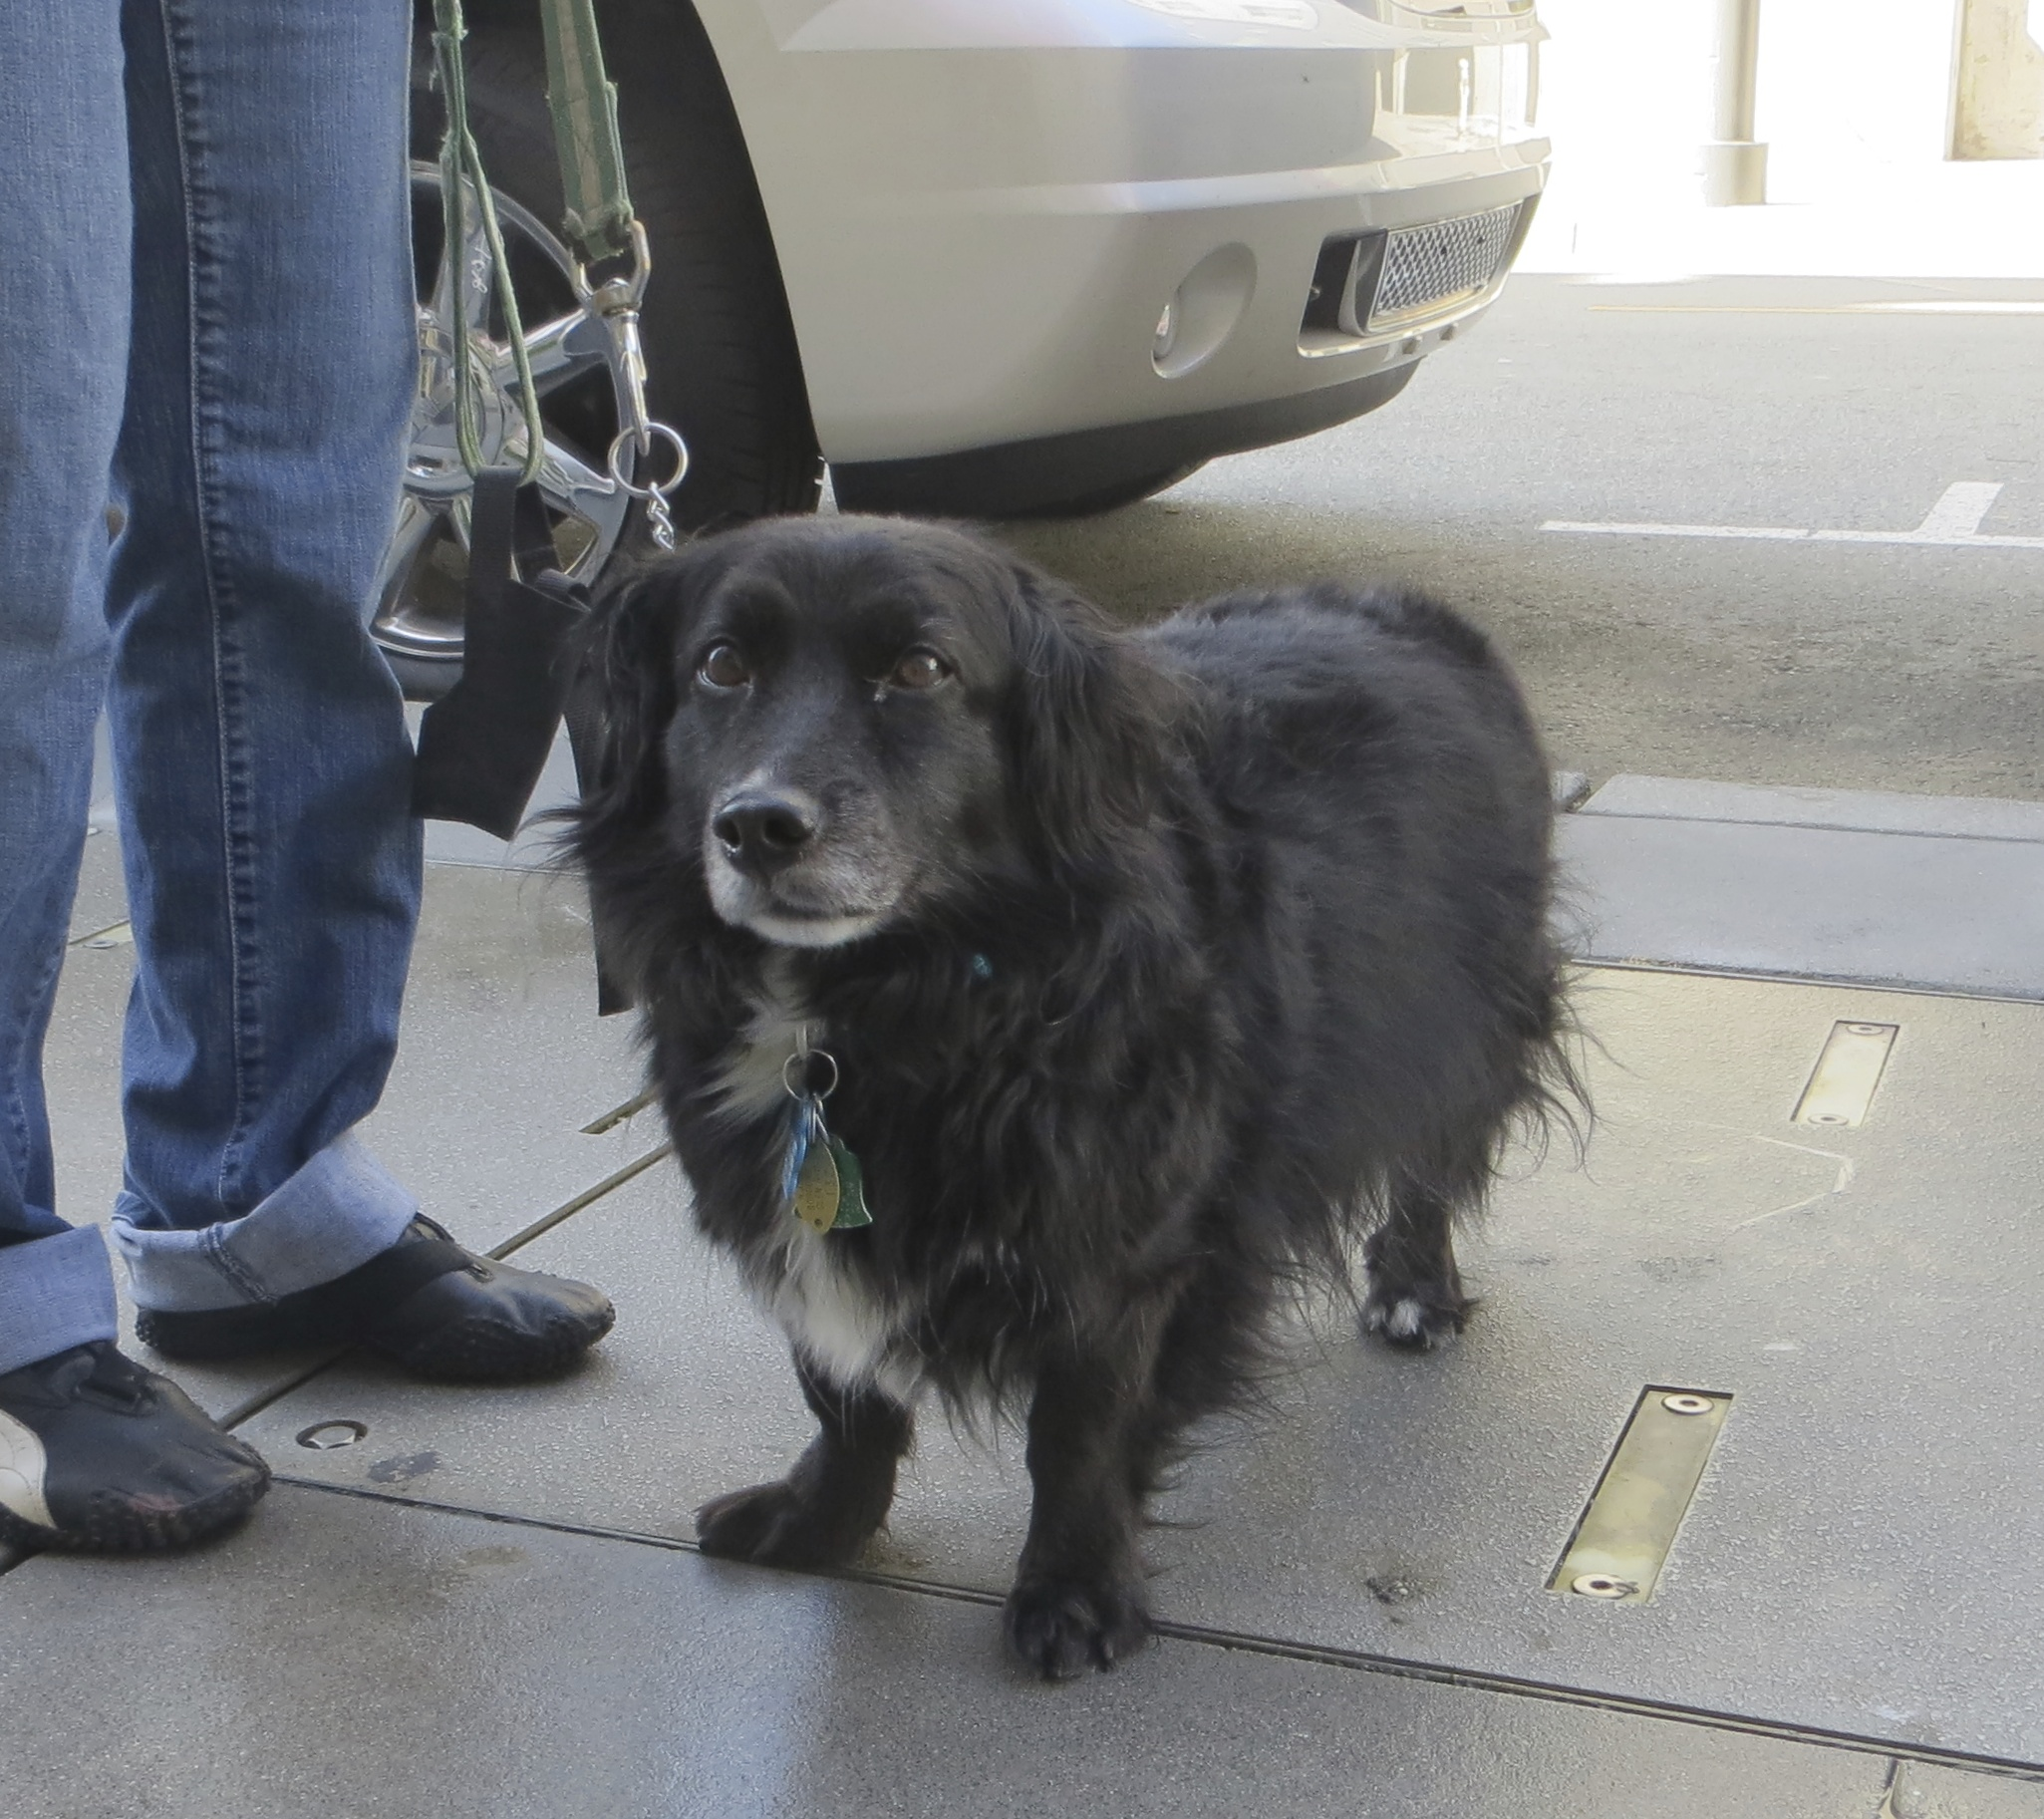 Black Border Collie Mix with Short Legs and a White Chest